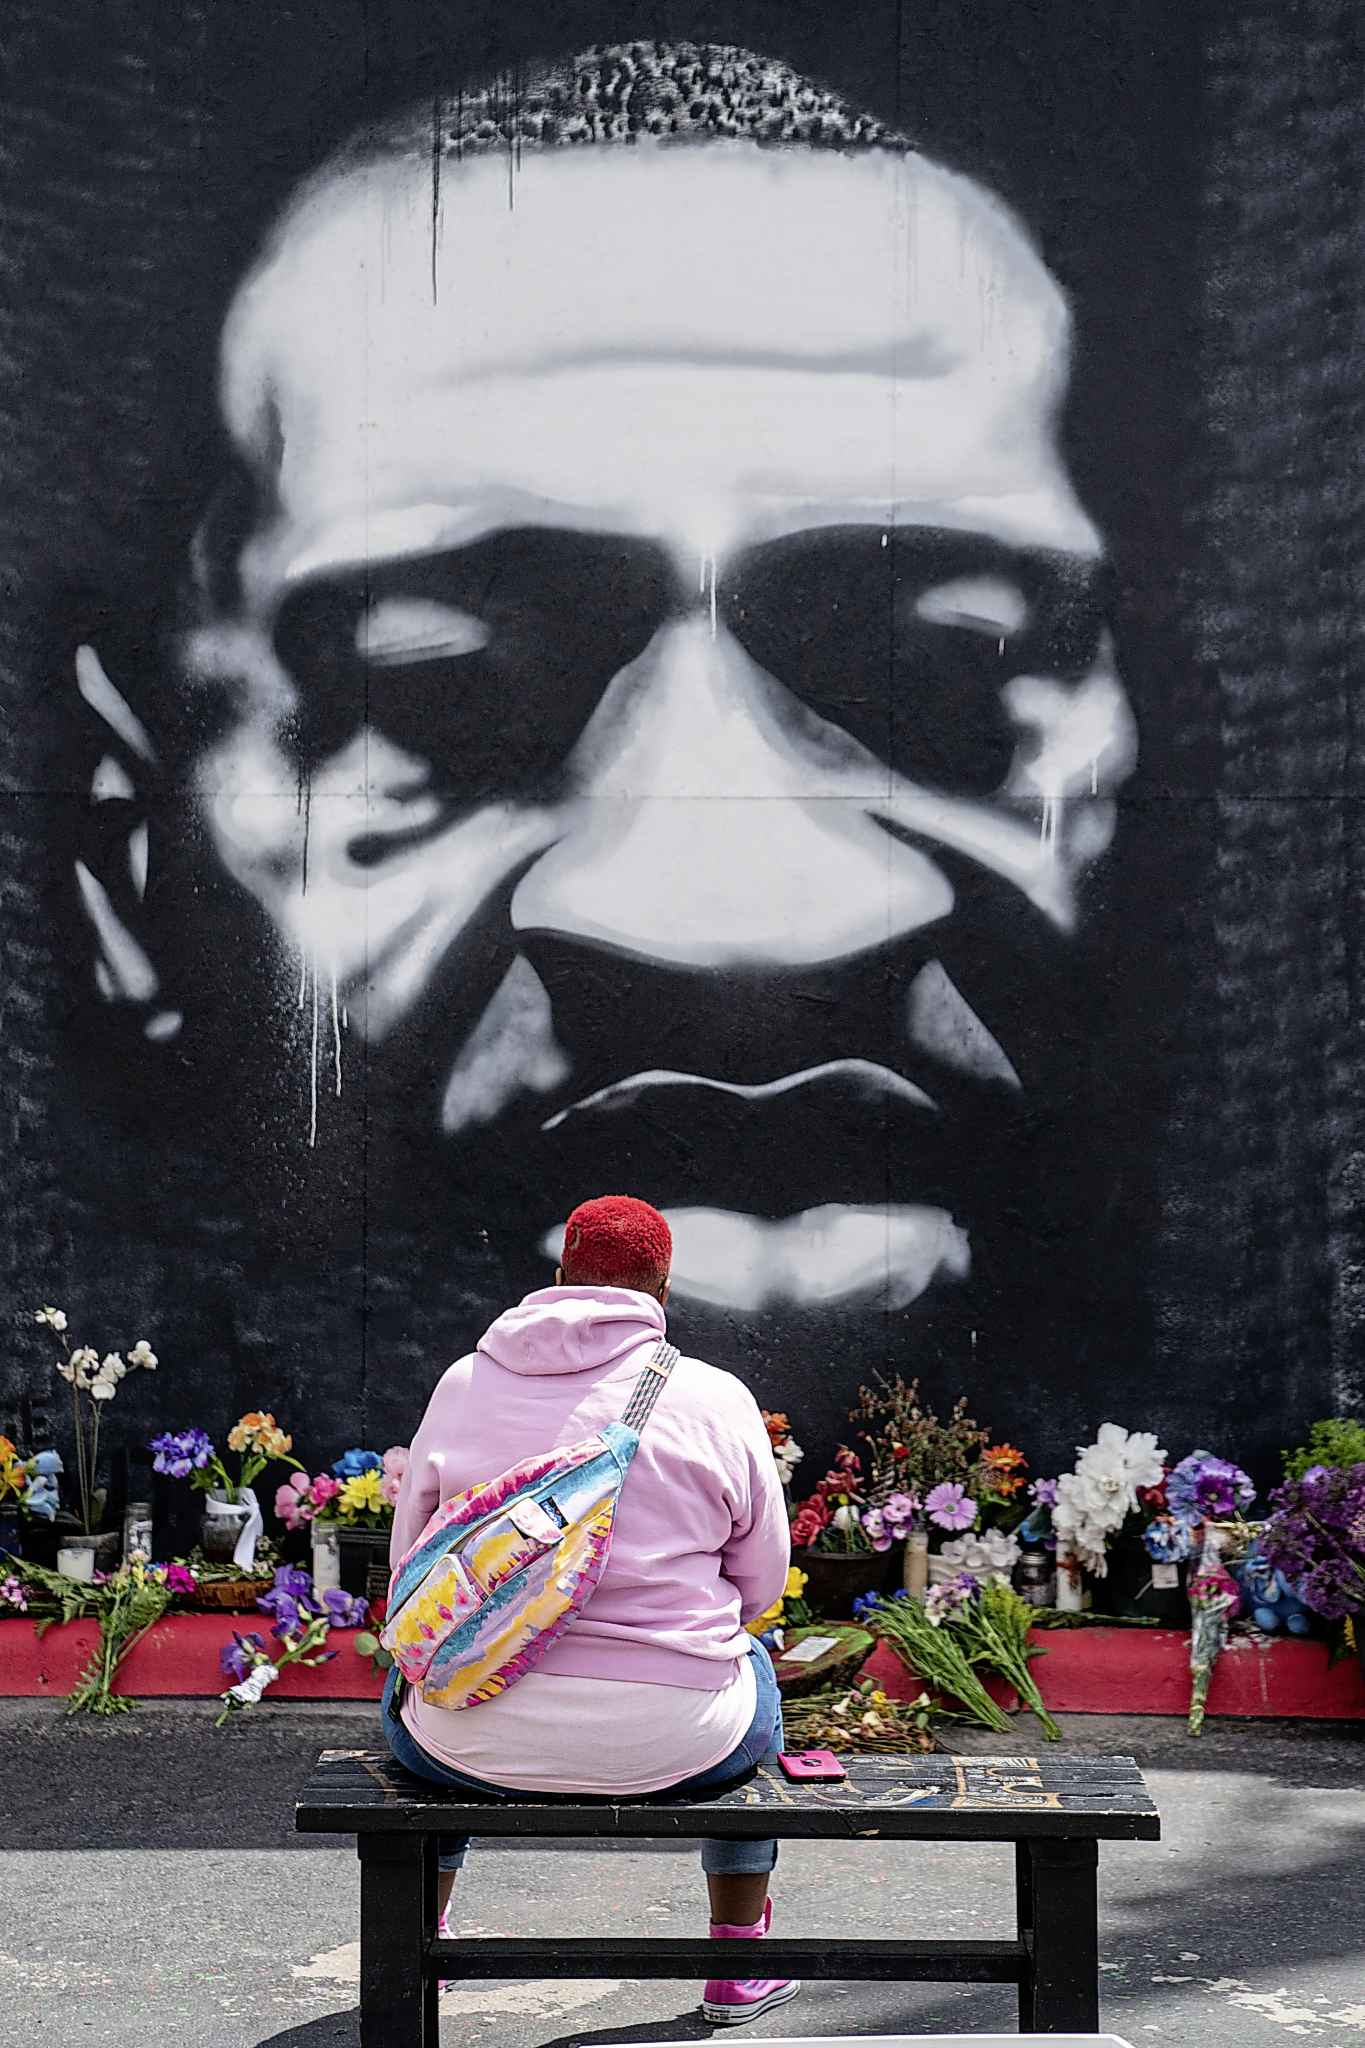 Myisha T. Hall, of Las Vegas, sits on a bench in front of a large mural depicting the late George Floyd, as people from across Minneapolis, and the world gather to visit the George Floyd Memorial Square on Tuesday, May 25, 2021, in Minneapolis, MN. (Kent Nishimura/Los Angeles Times/TNS)